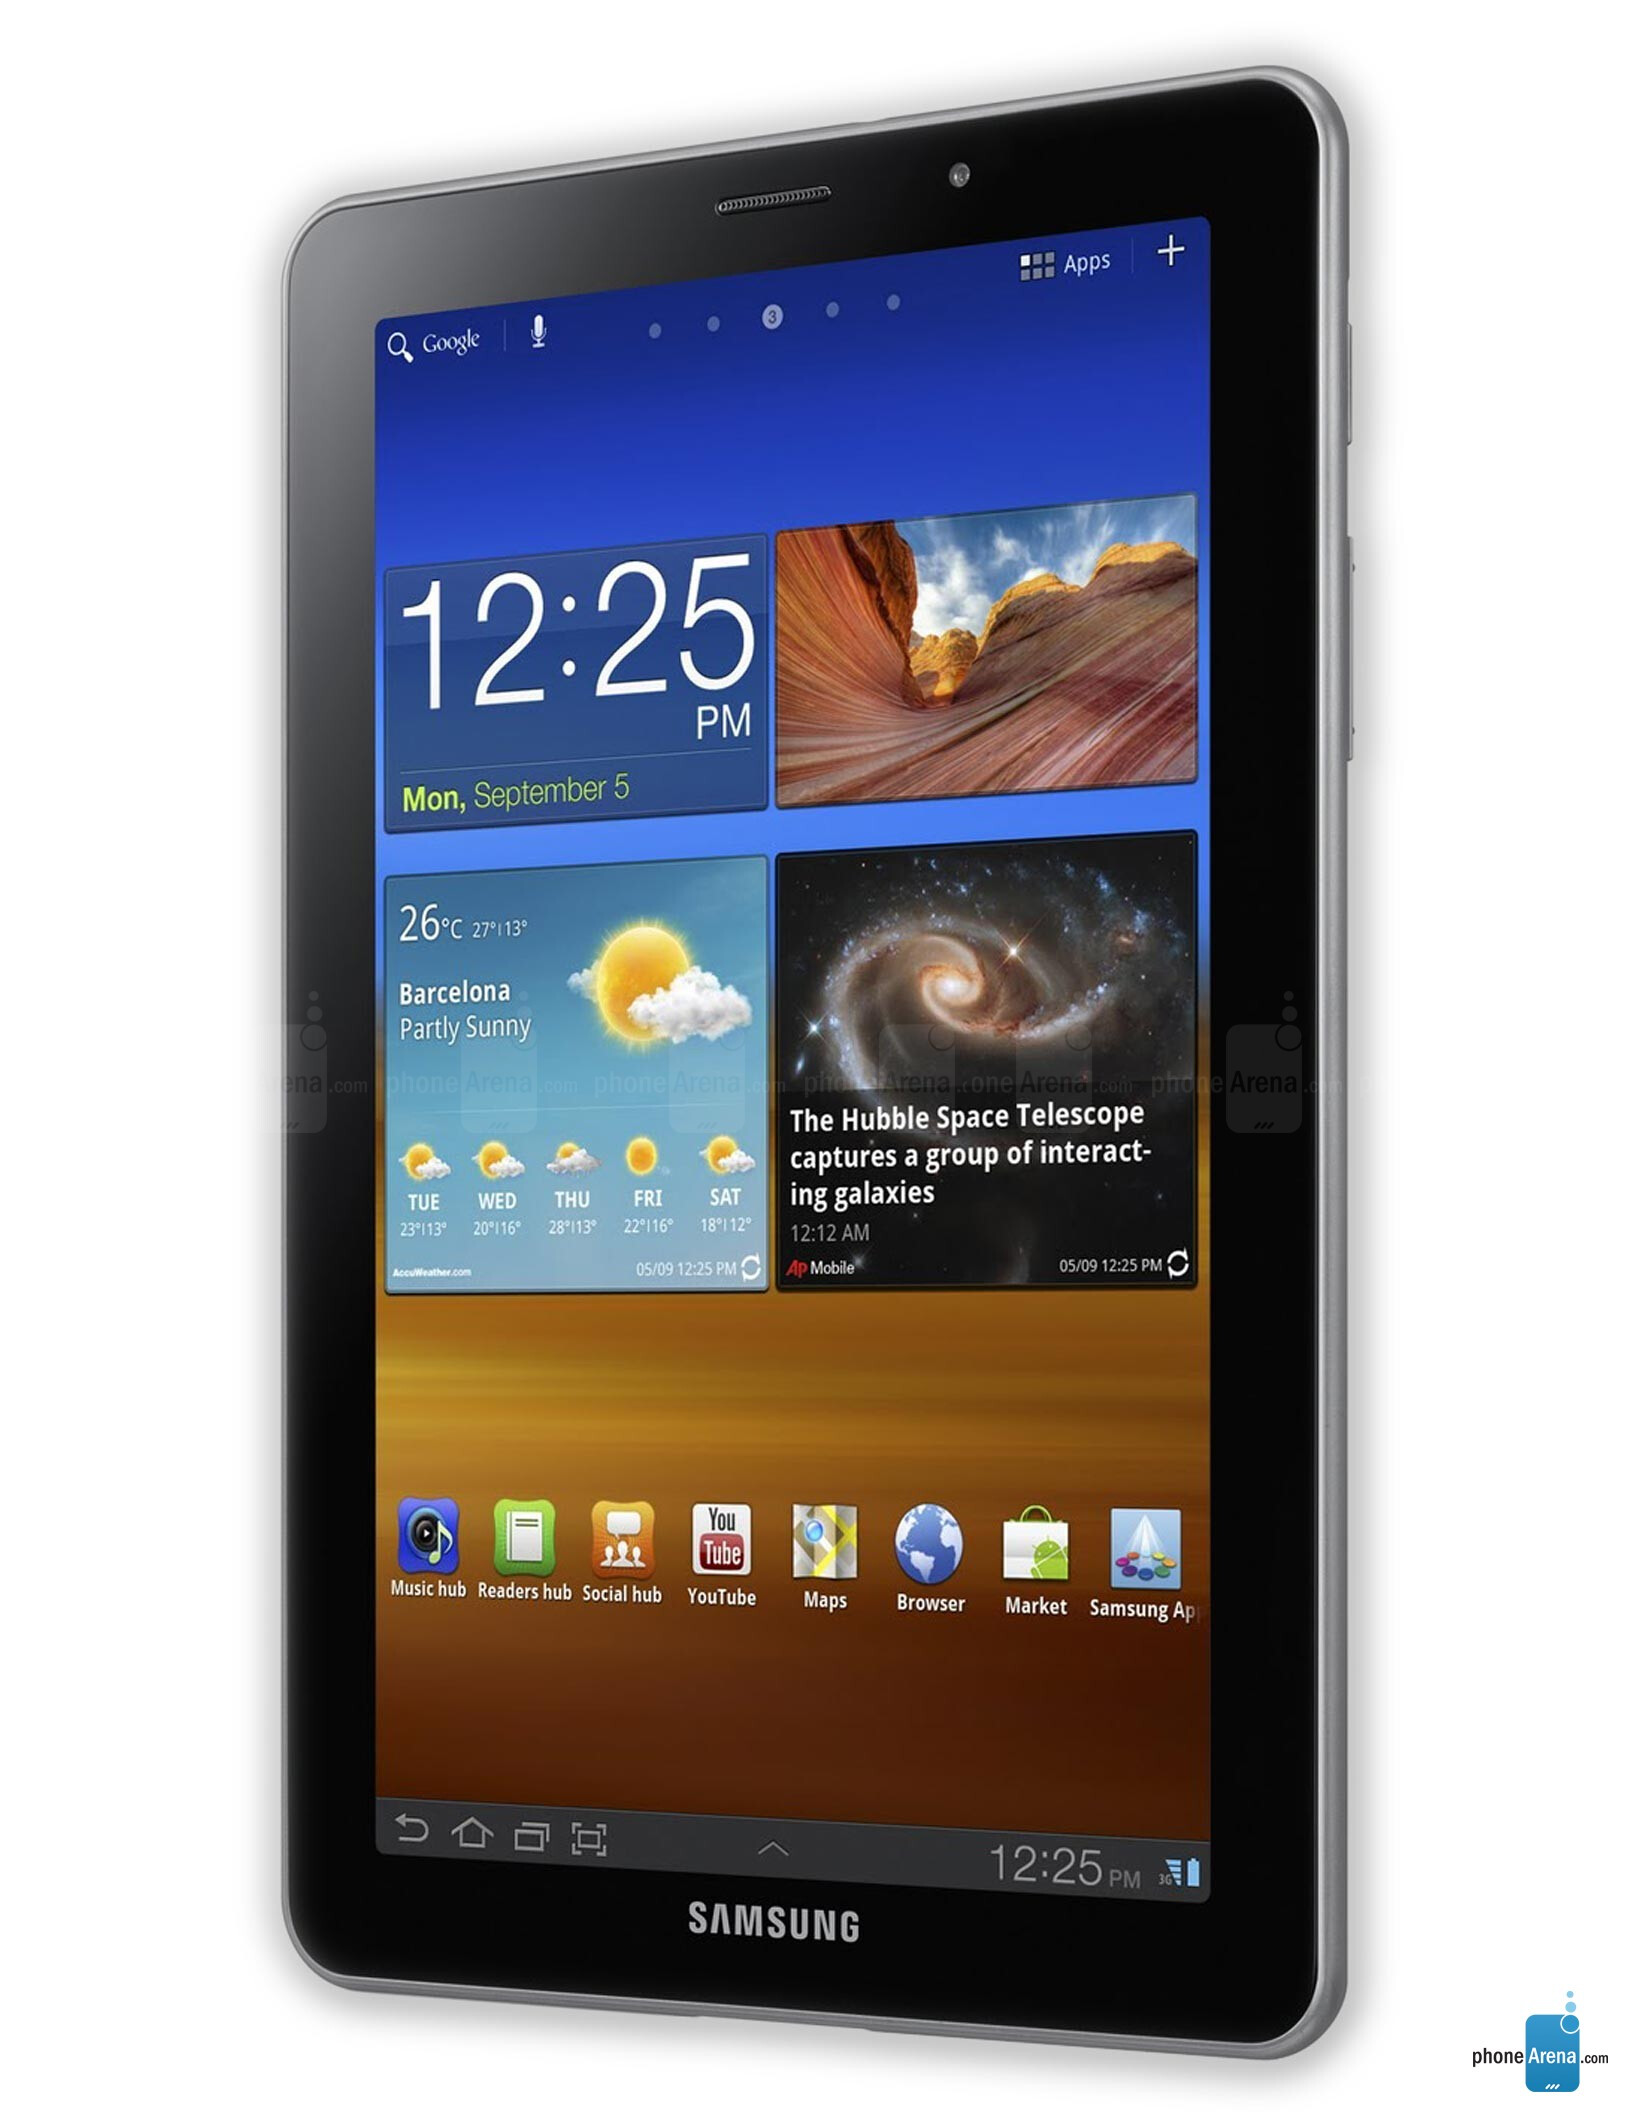 samsung galaxy tab 7 7 specs. Black Bedroom Furniture Sets. Home Design Ideas